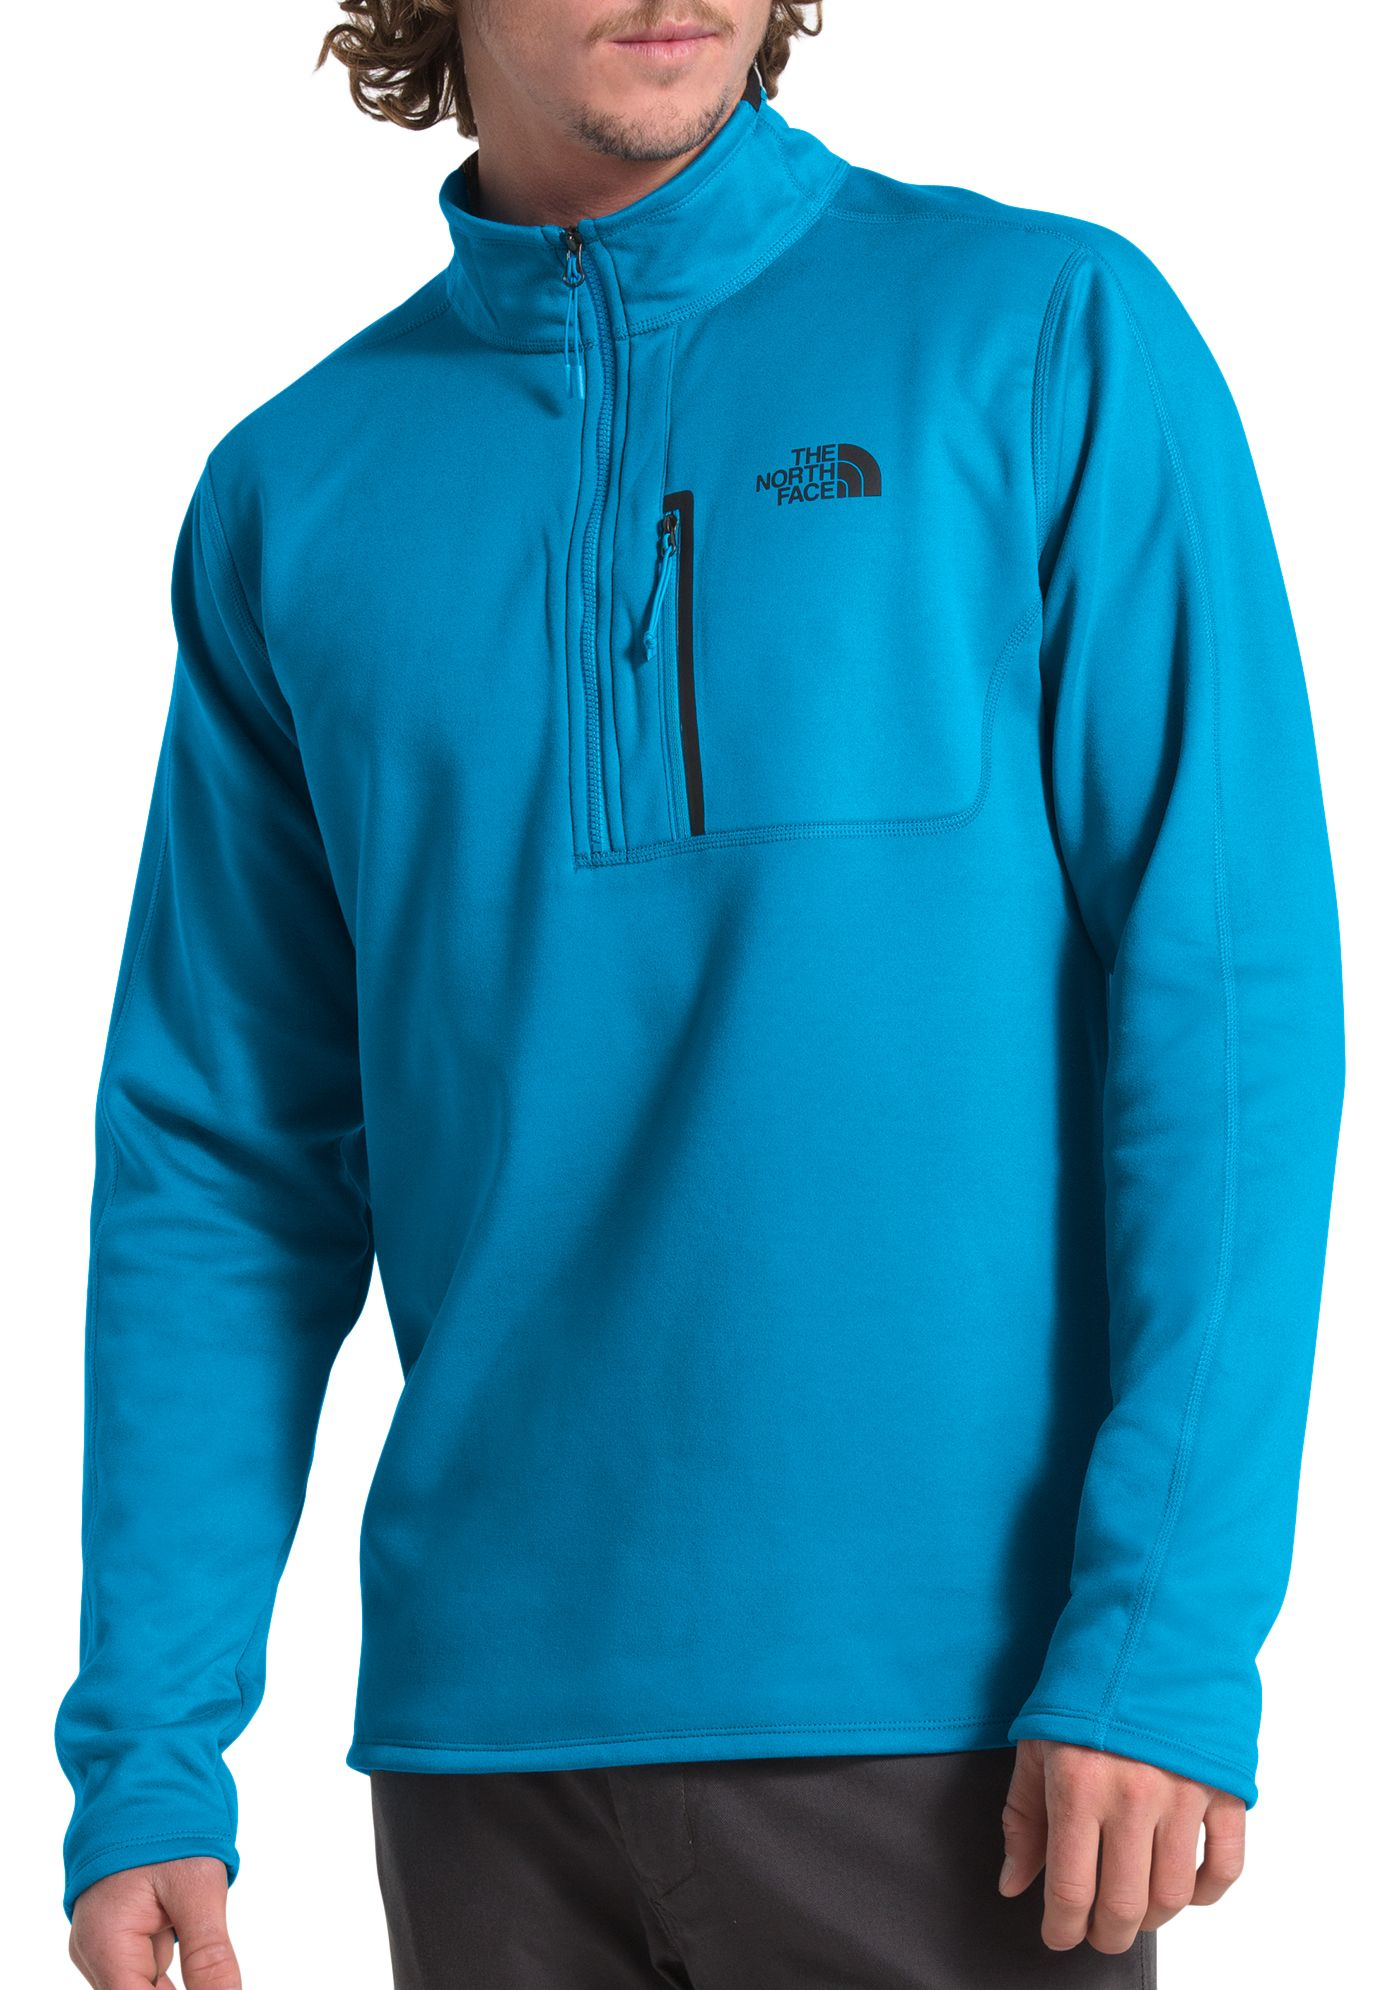 The North Face Men's Canyonlands Half Zip Pullover (Regular and Big & Tall)